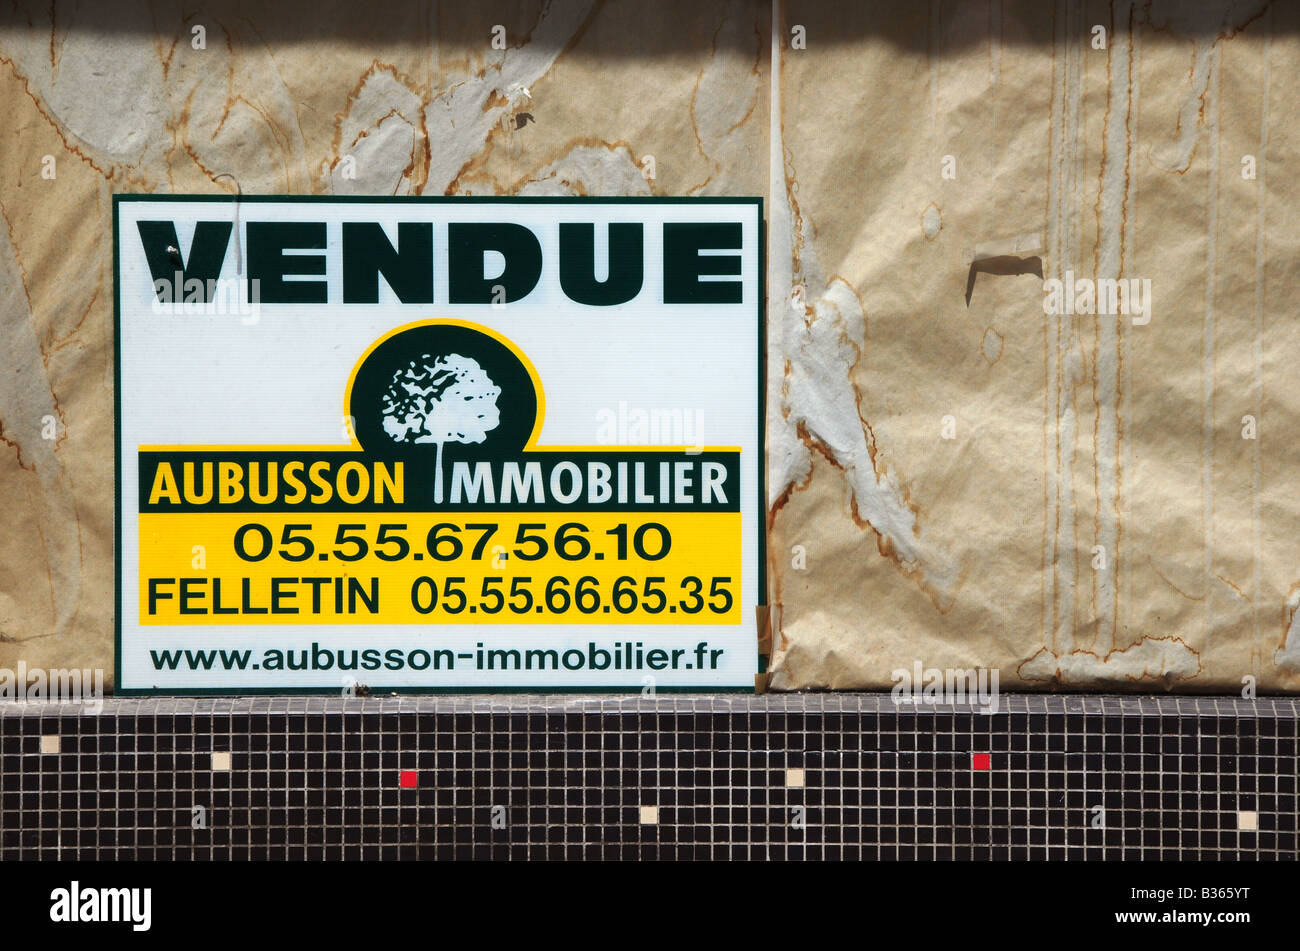 Property for sale sign in Aubusson, France - Stock Image